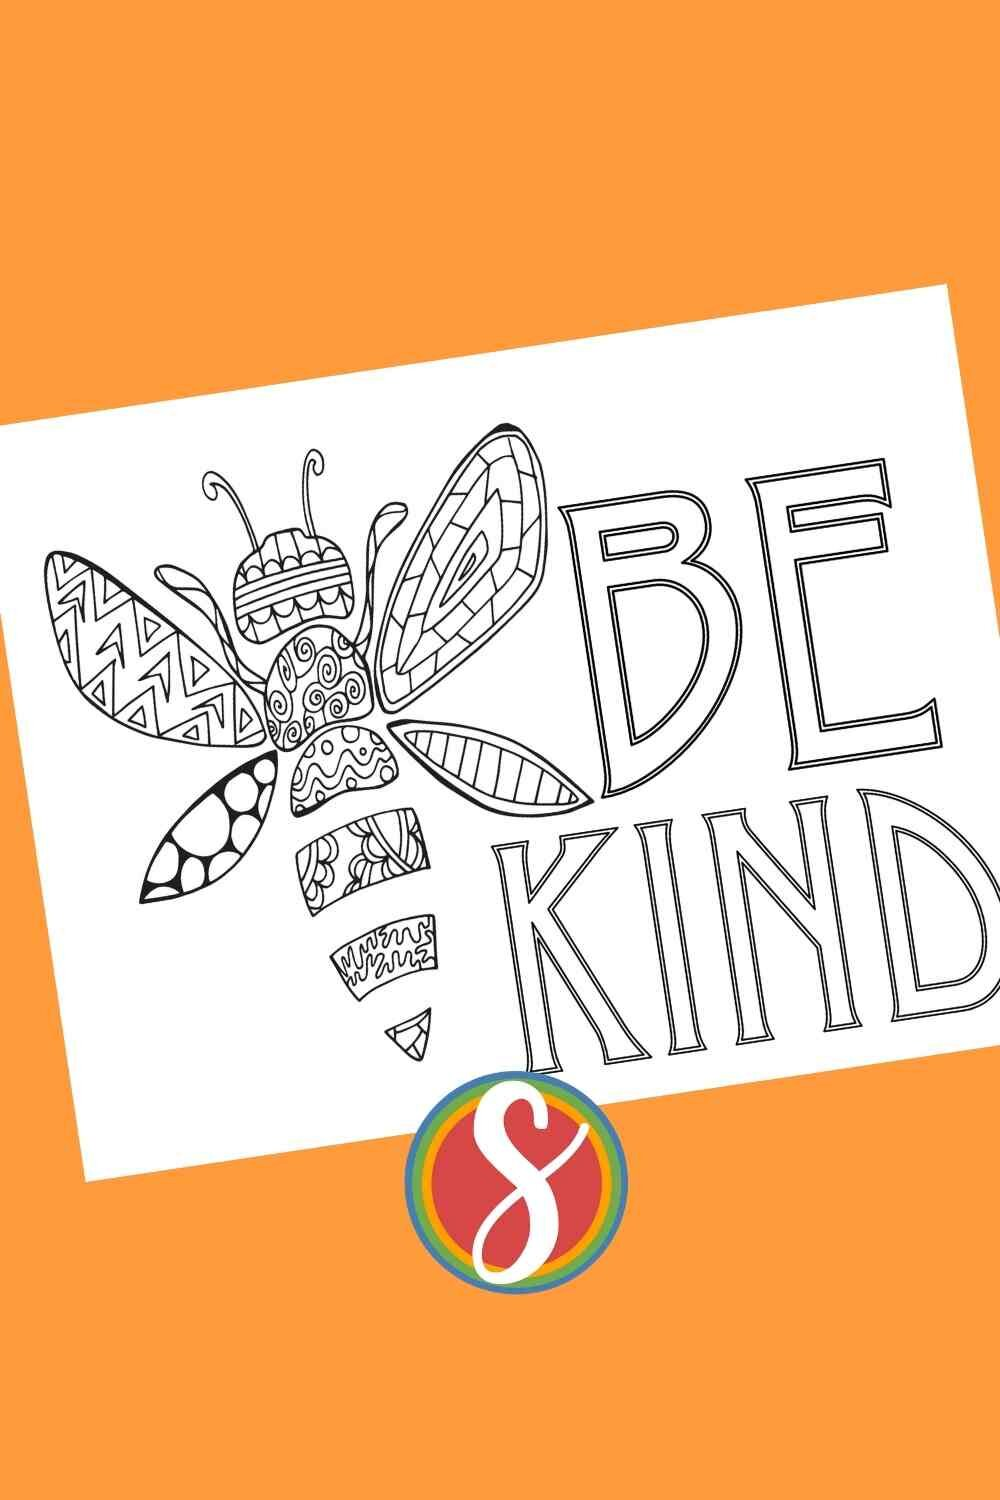 """This free bee coloring pages has a doodle bee - great for bigger kids or adults - with the reminder to """"be kind"""" from Stevie Doodles free printables"""